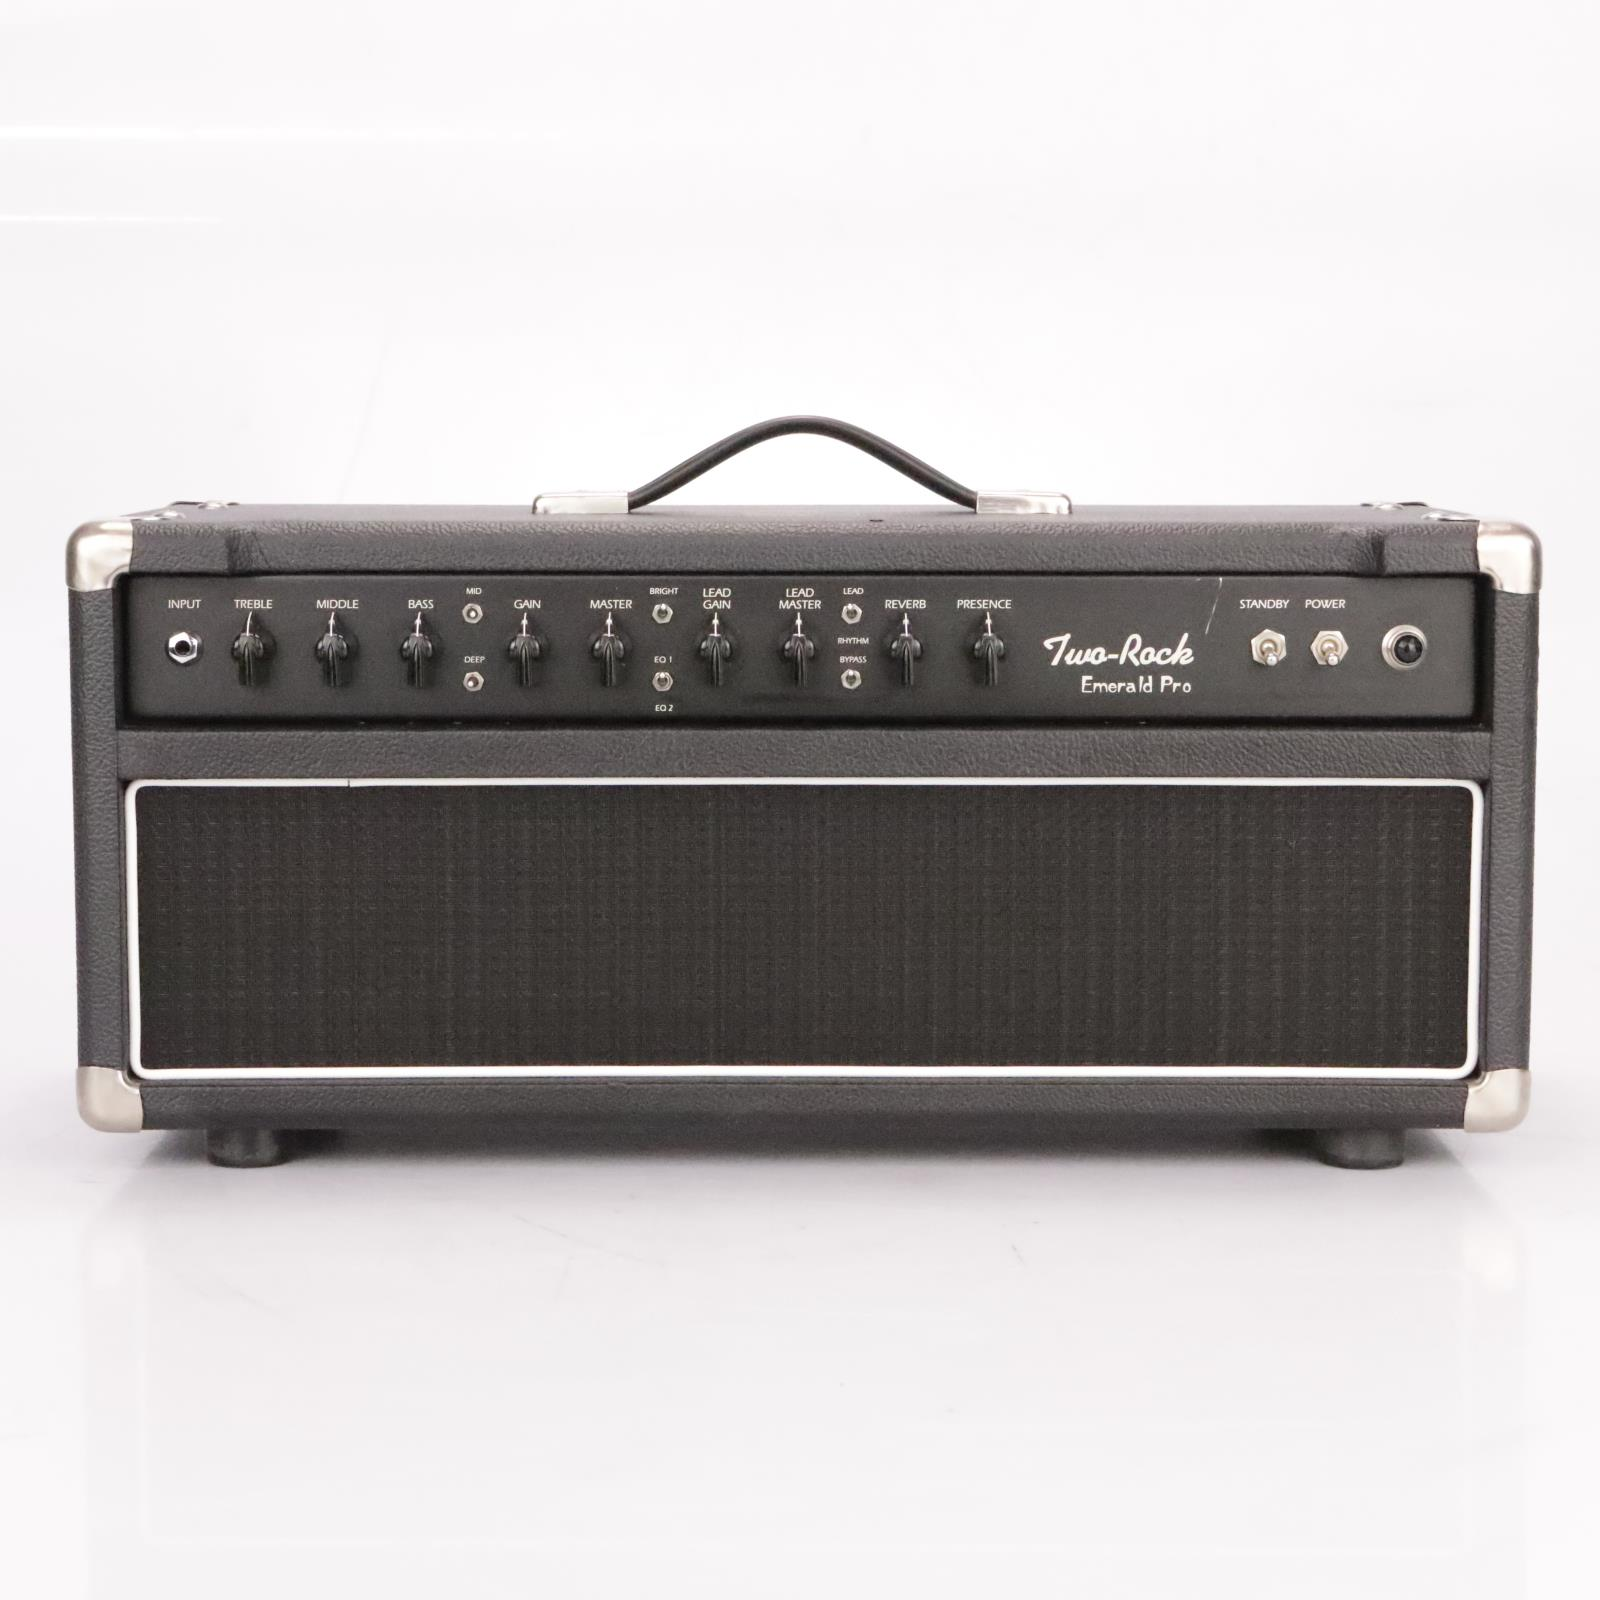 Two Rock Emerald Pro 50w Tube Guitar Amplifier Head Amp RARE #37275